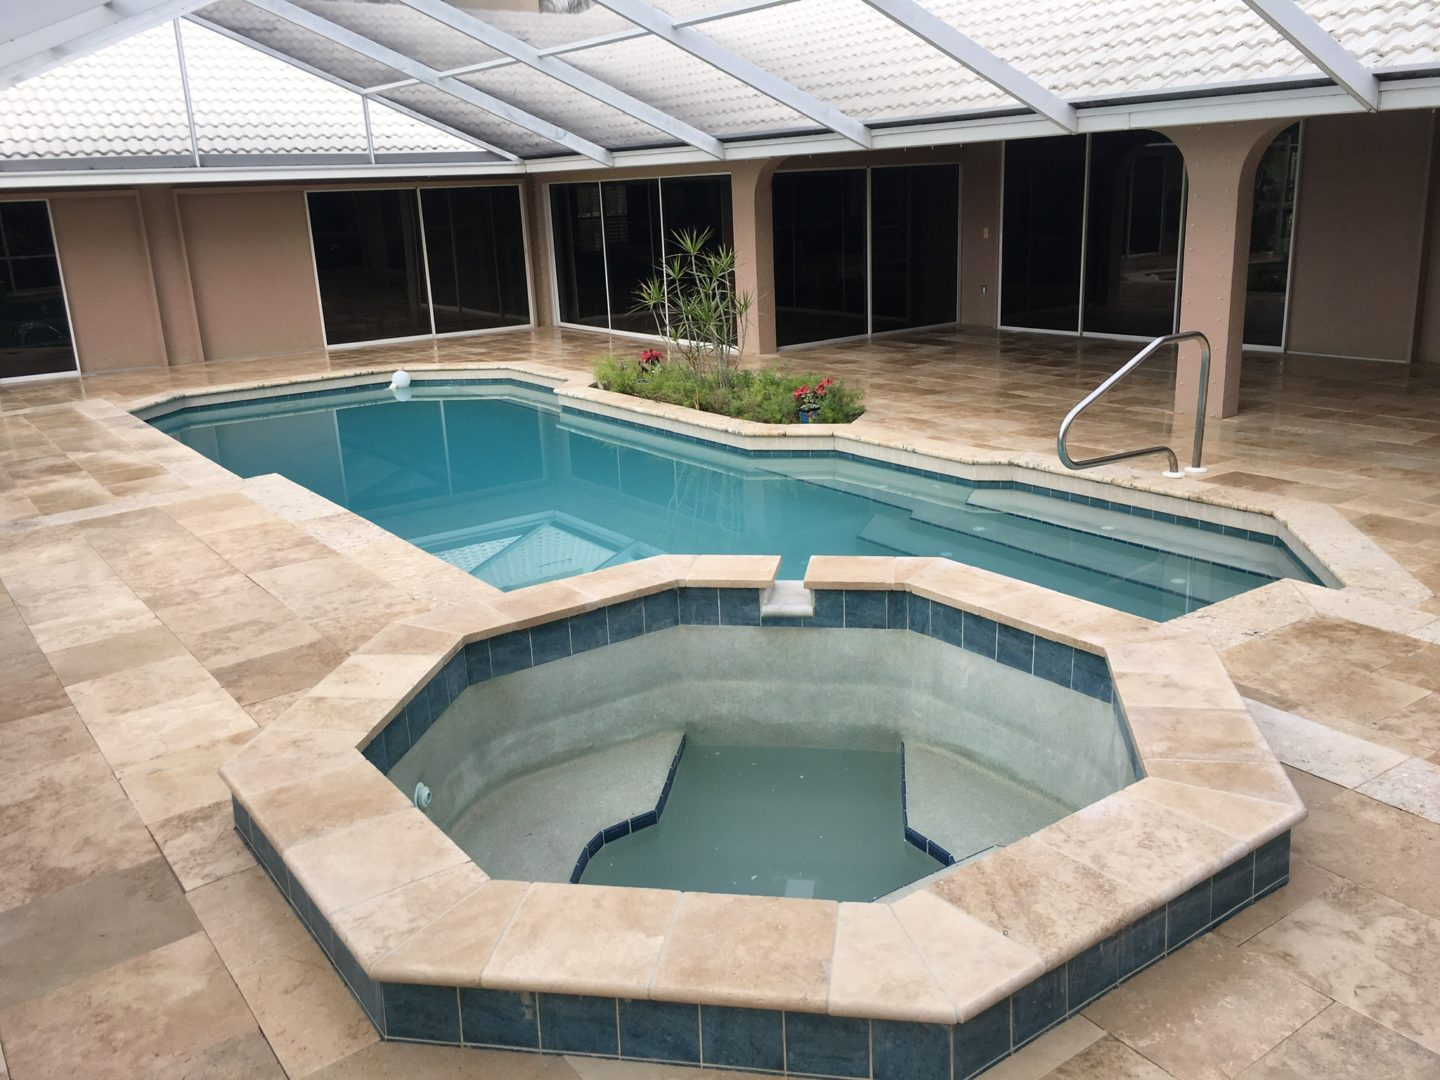 Travertine pavers that don't get hot!